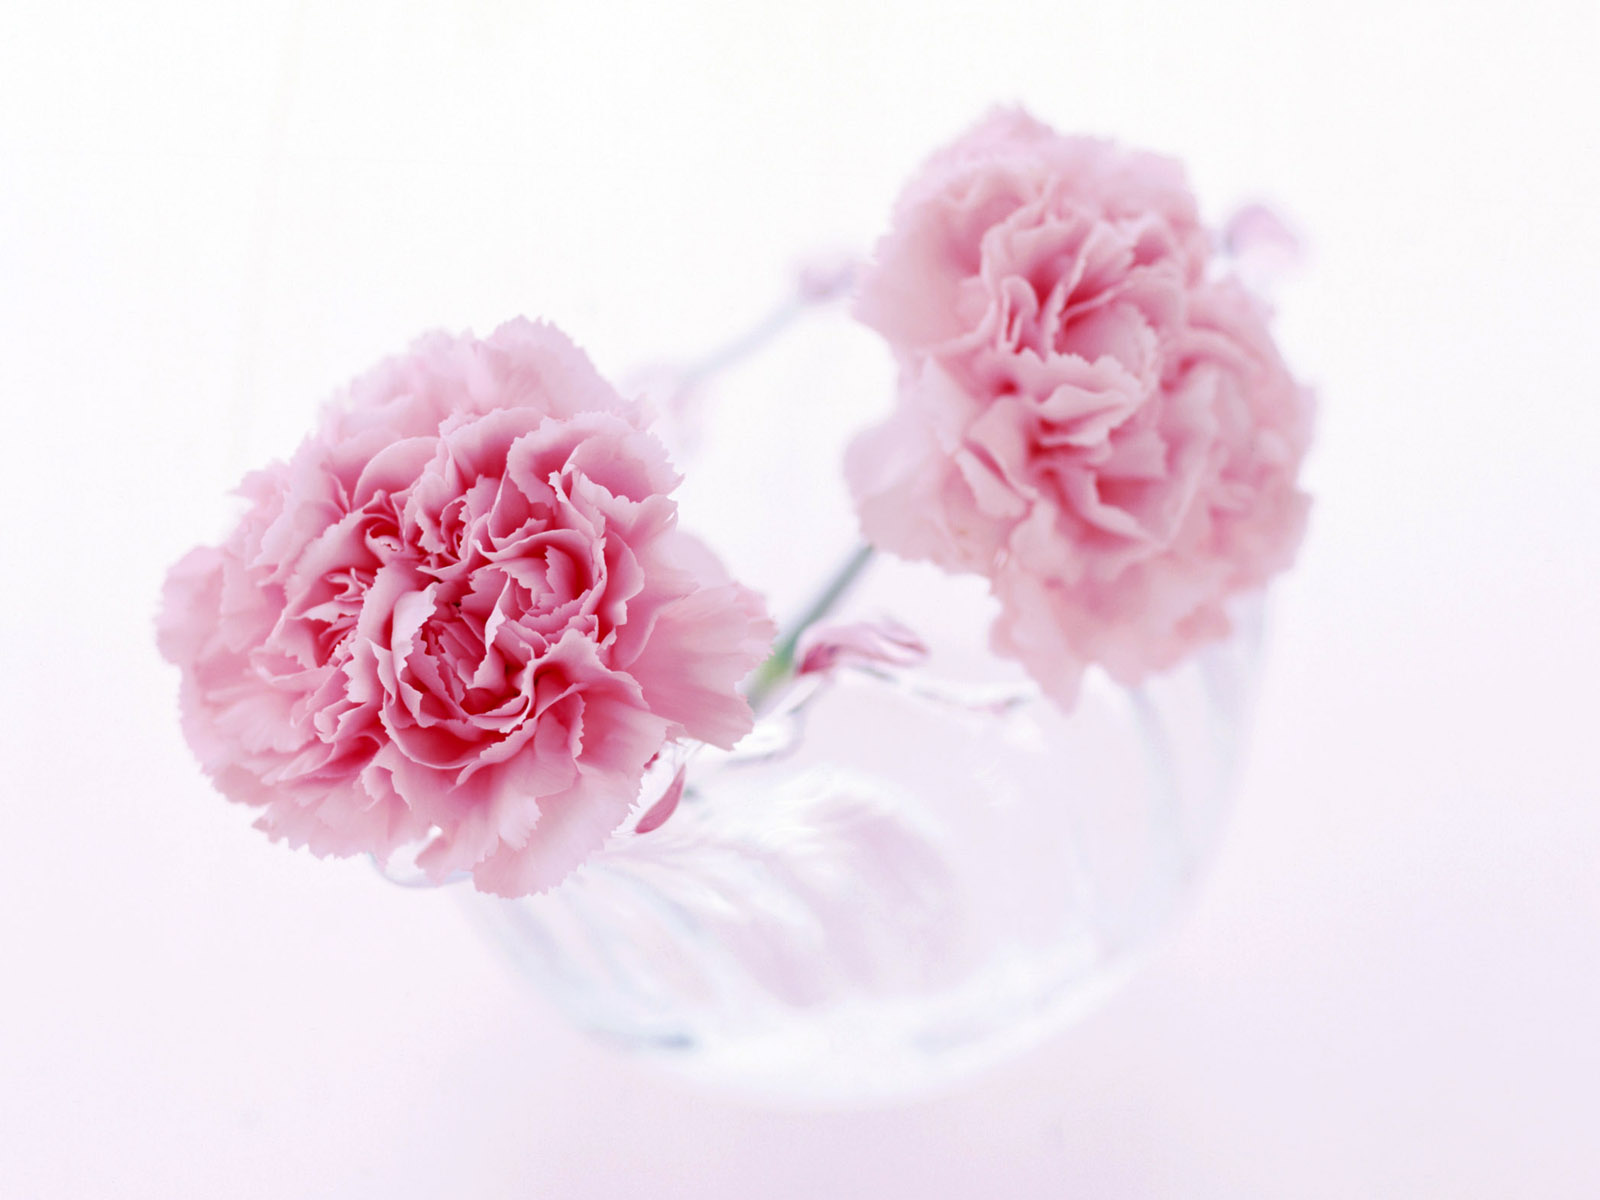 Carnation flowers 5919